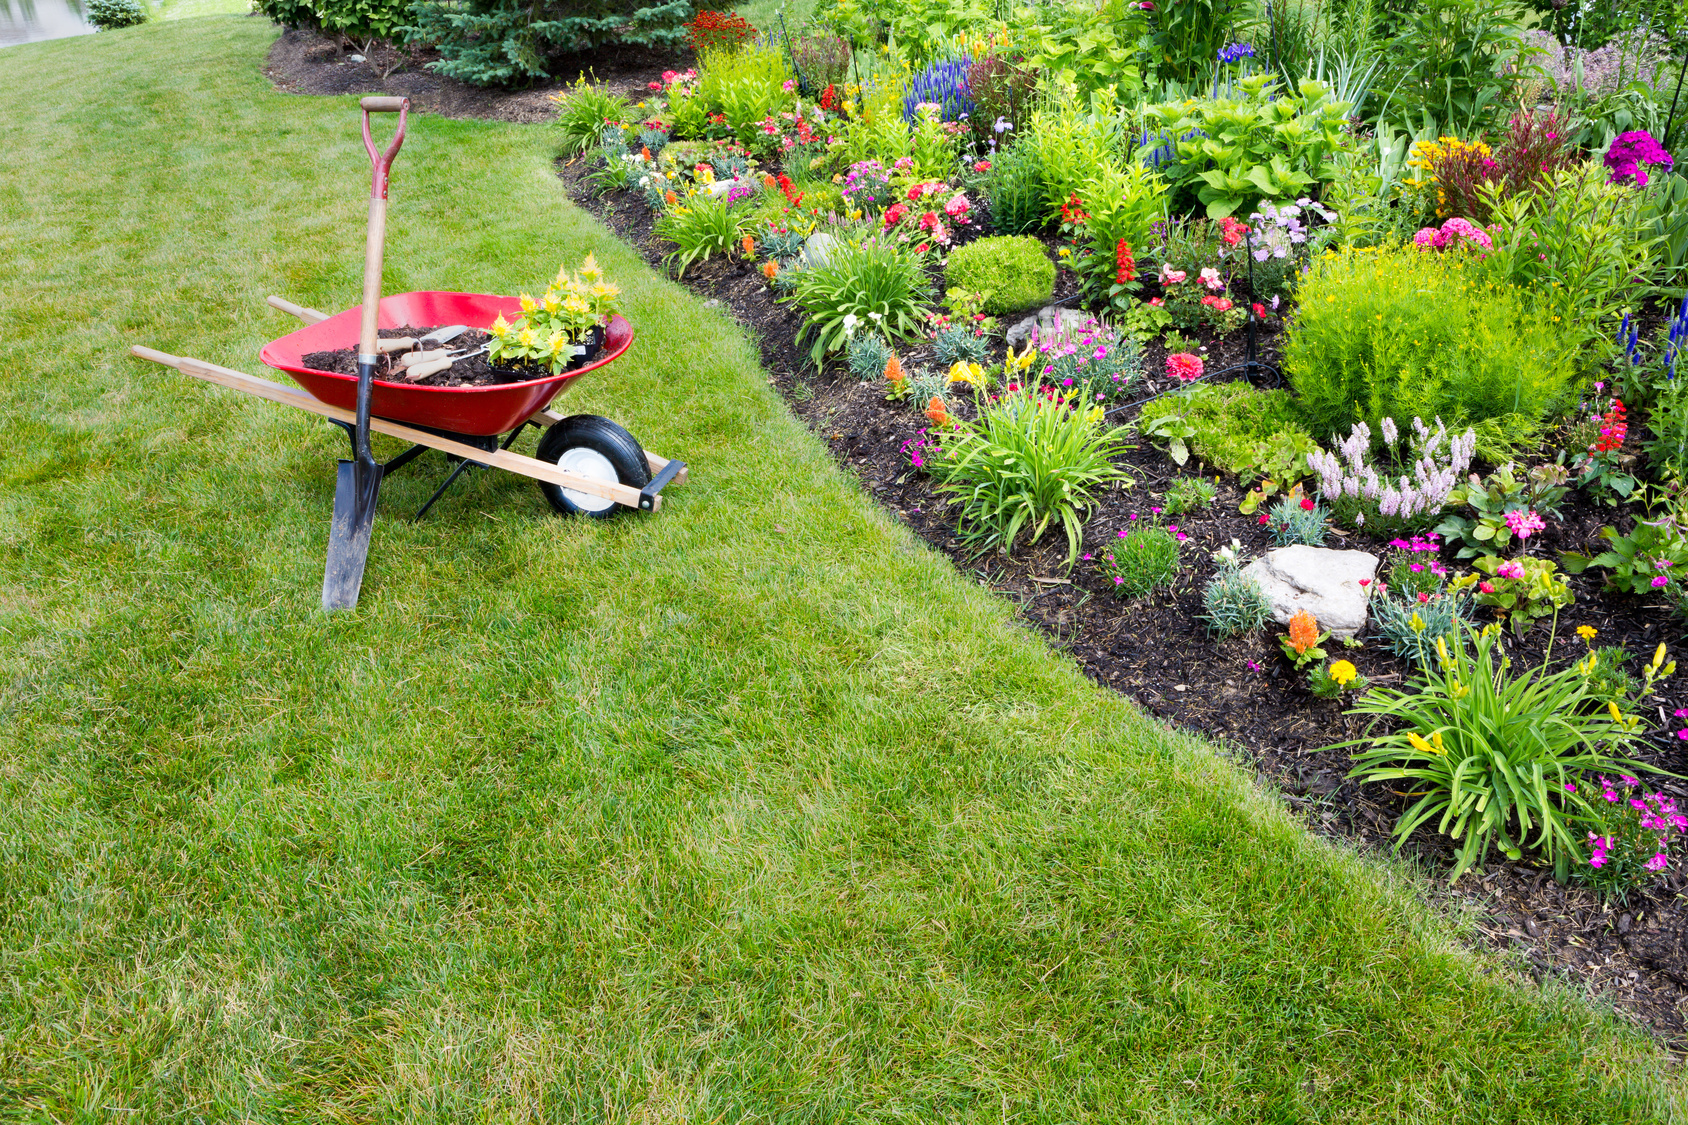 Semi-Absentee Lawncare Business for sale